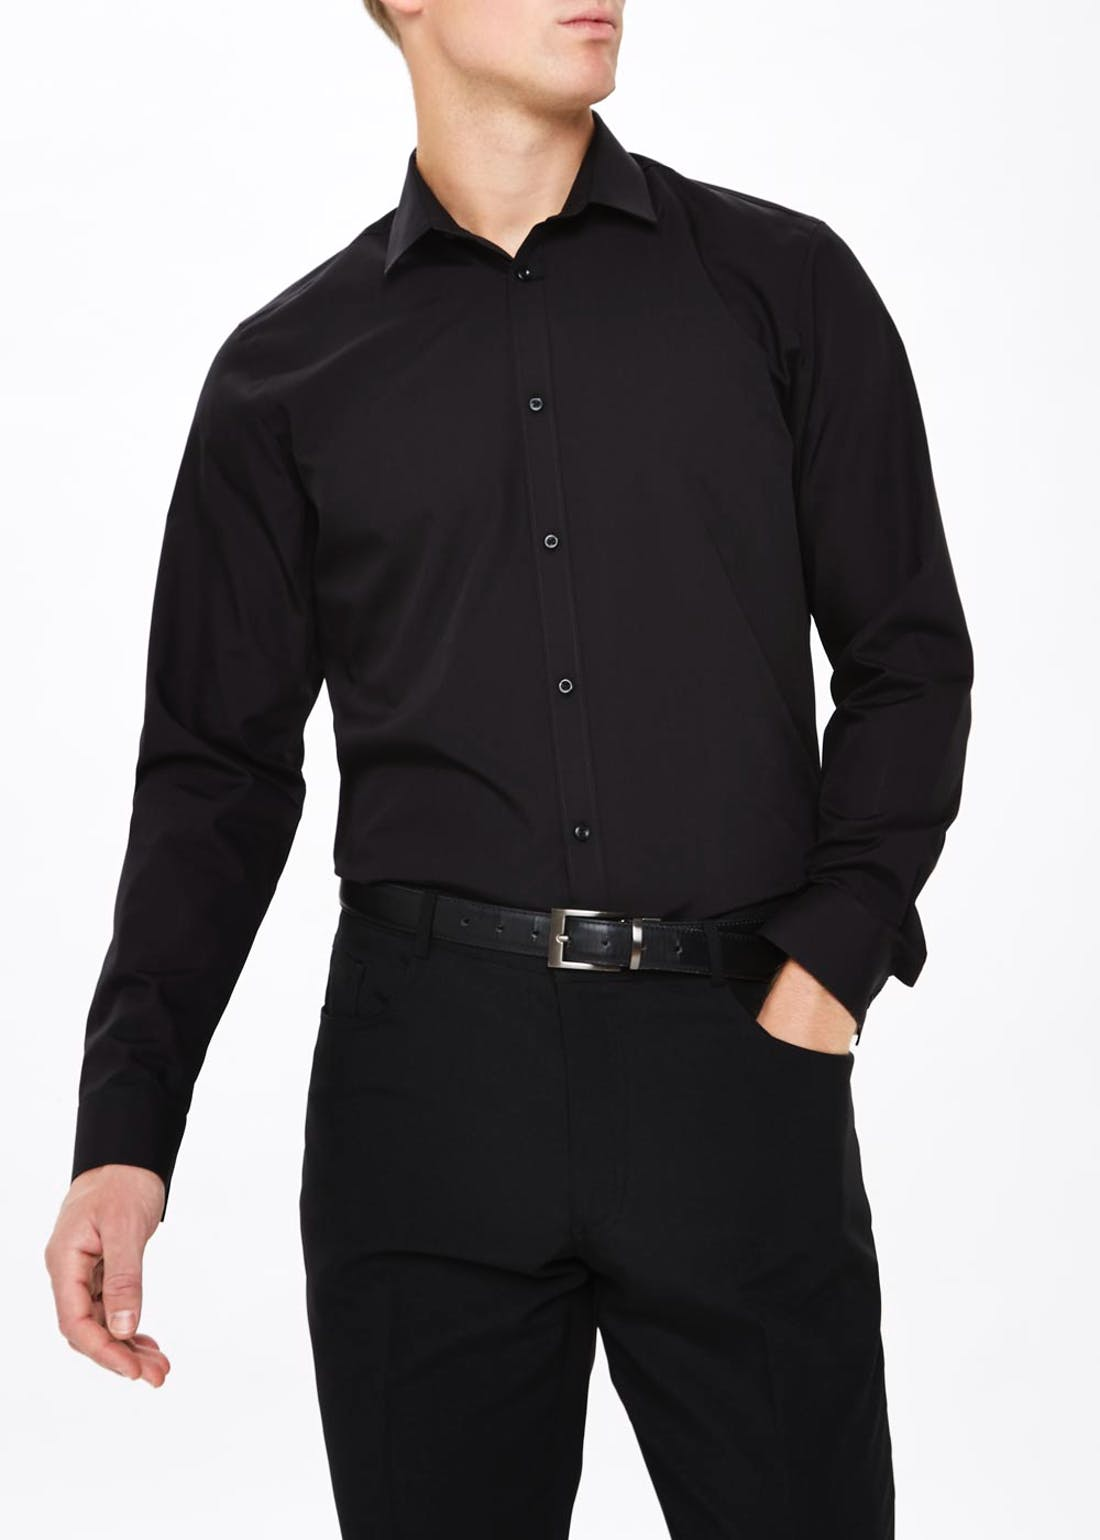 Taylor & Wright Easy Care Regular Fit Long Sleeve Shirt